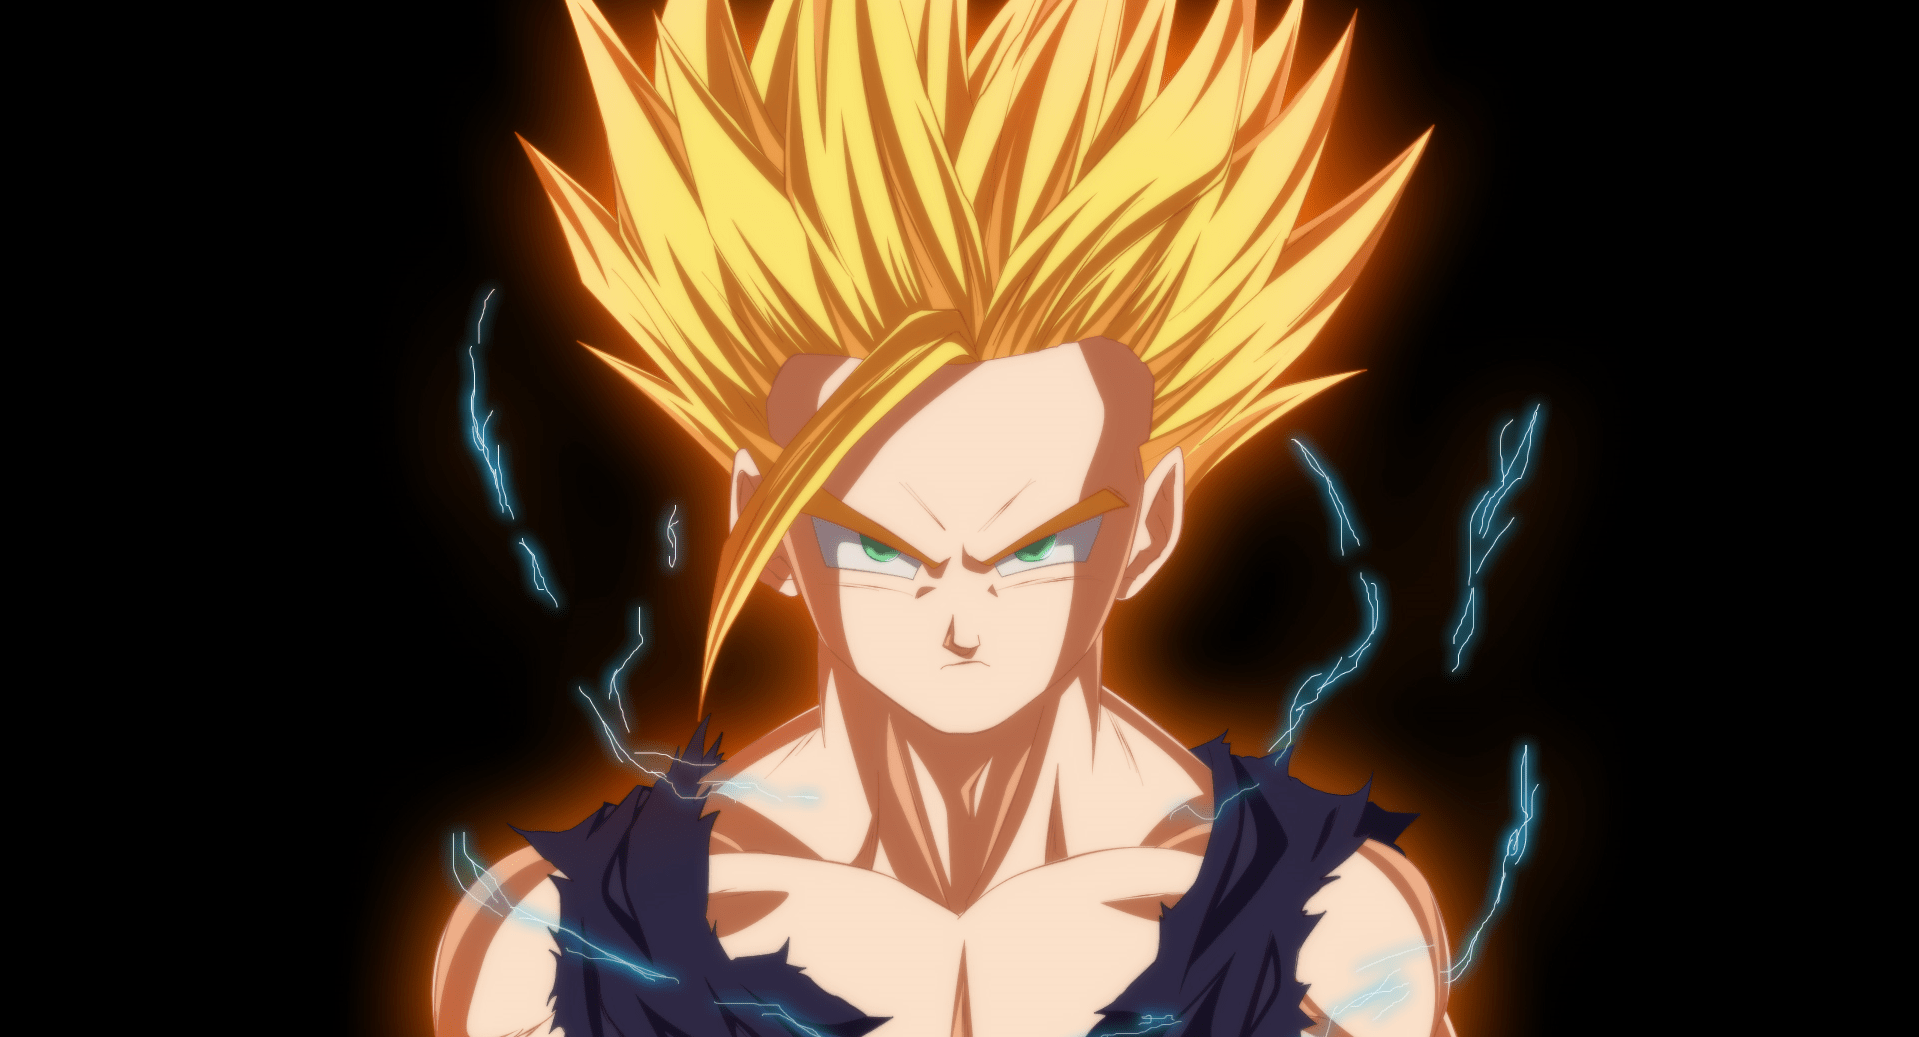 Dragon Ball Z Iphone Wallpaper Gohan Ssj2 Wallpaper And Background Image 1919x1037